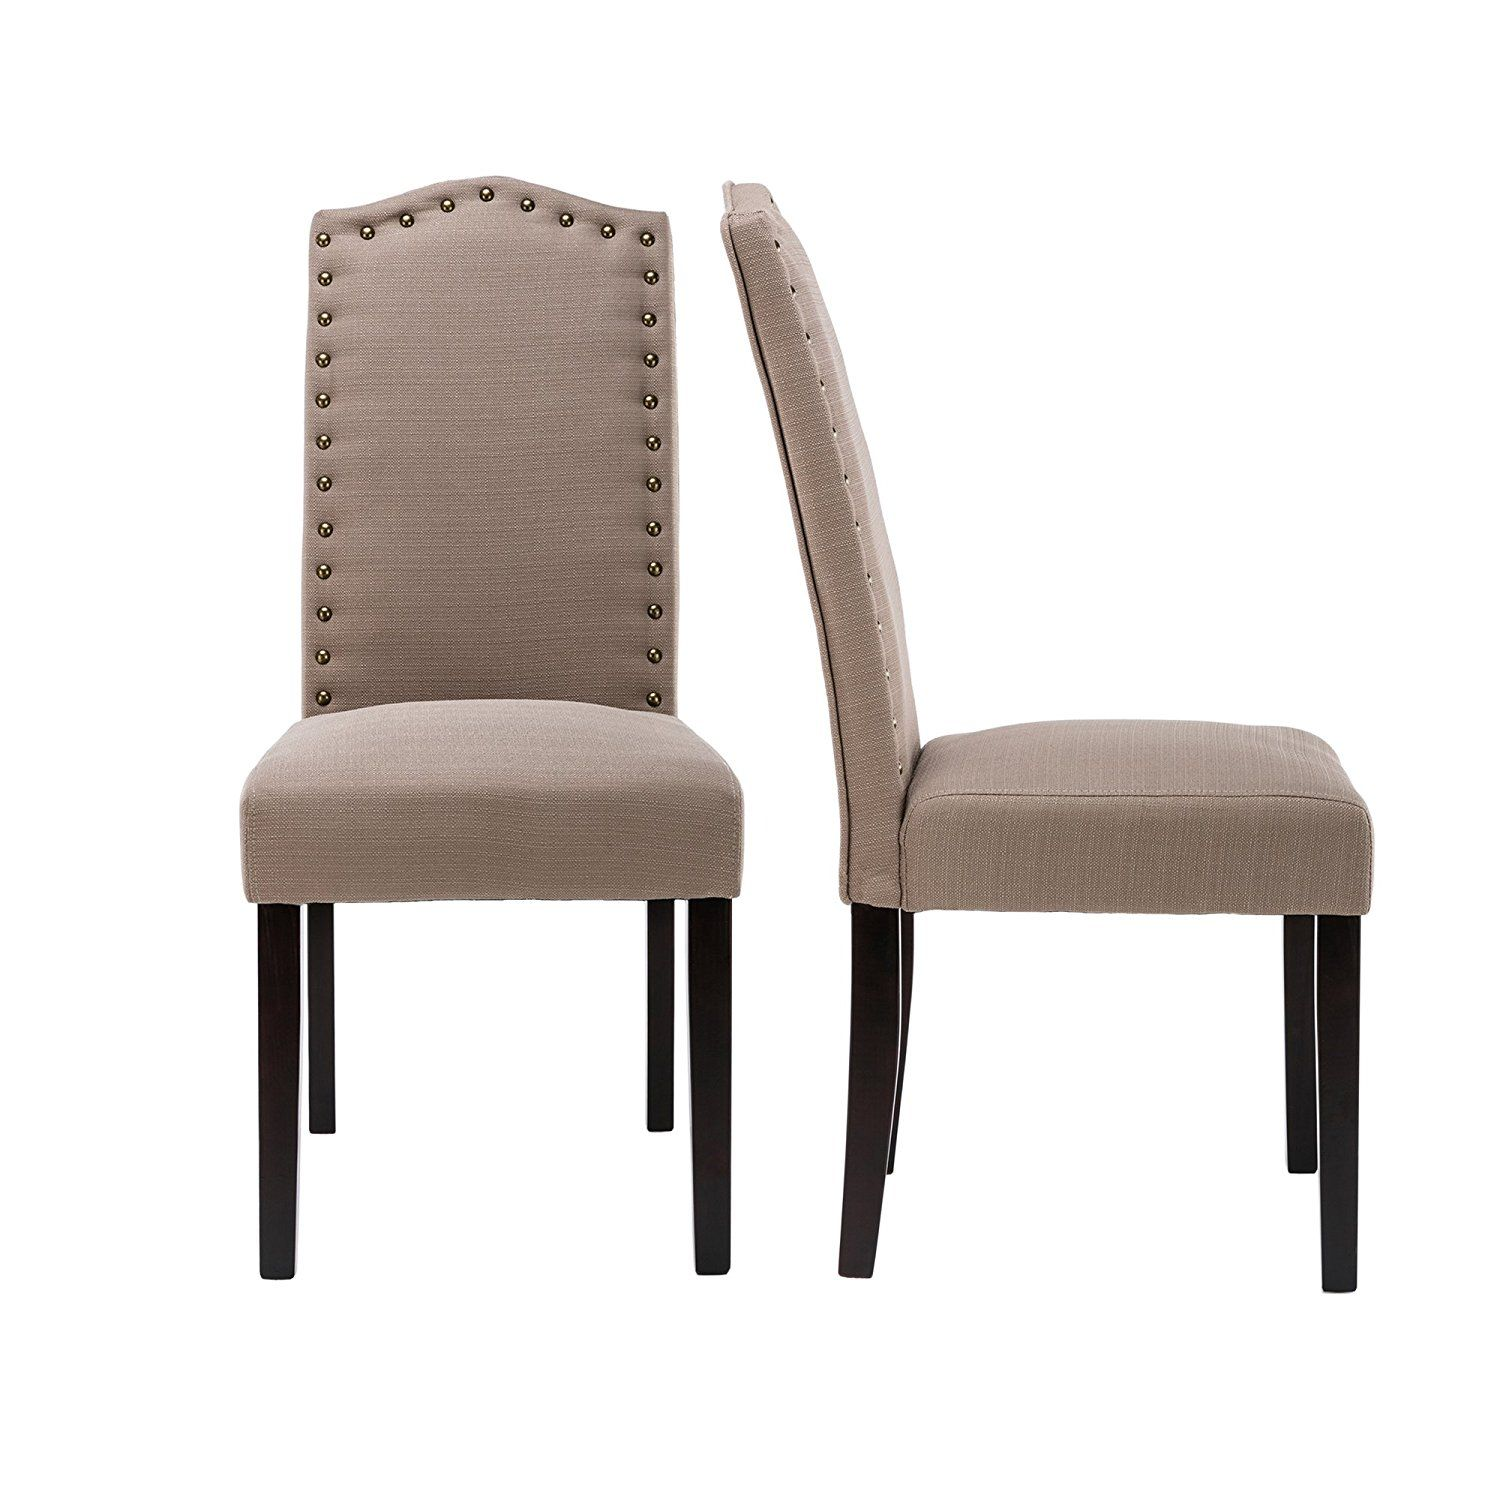 Amazon.com - LSSBOUGHT Set of 2 Luxurious Fabric Dining Chairs with ...